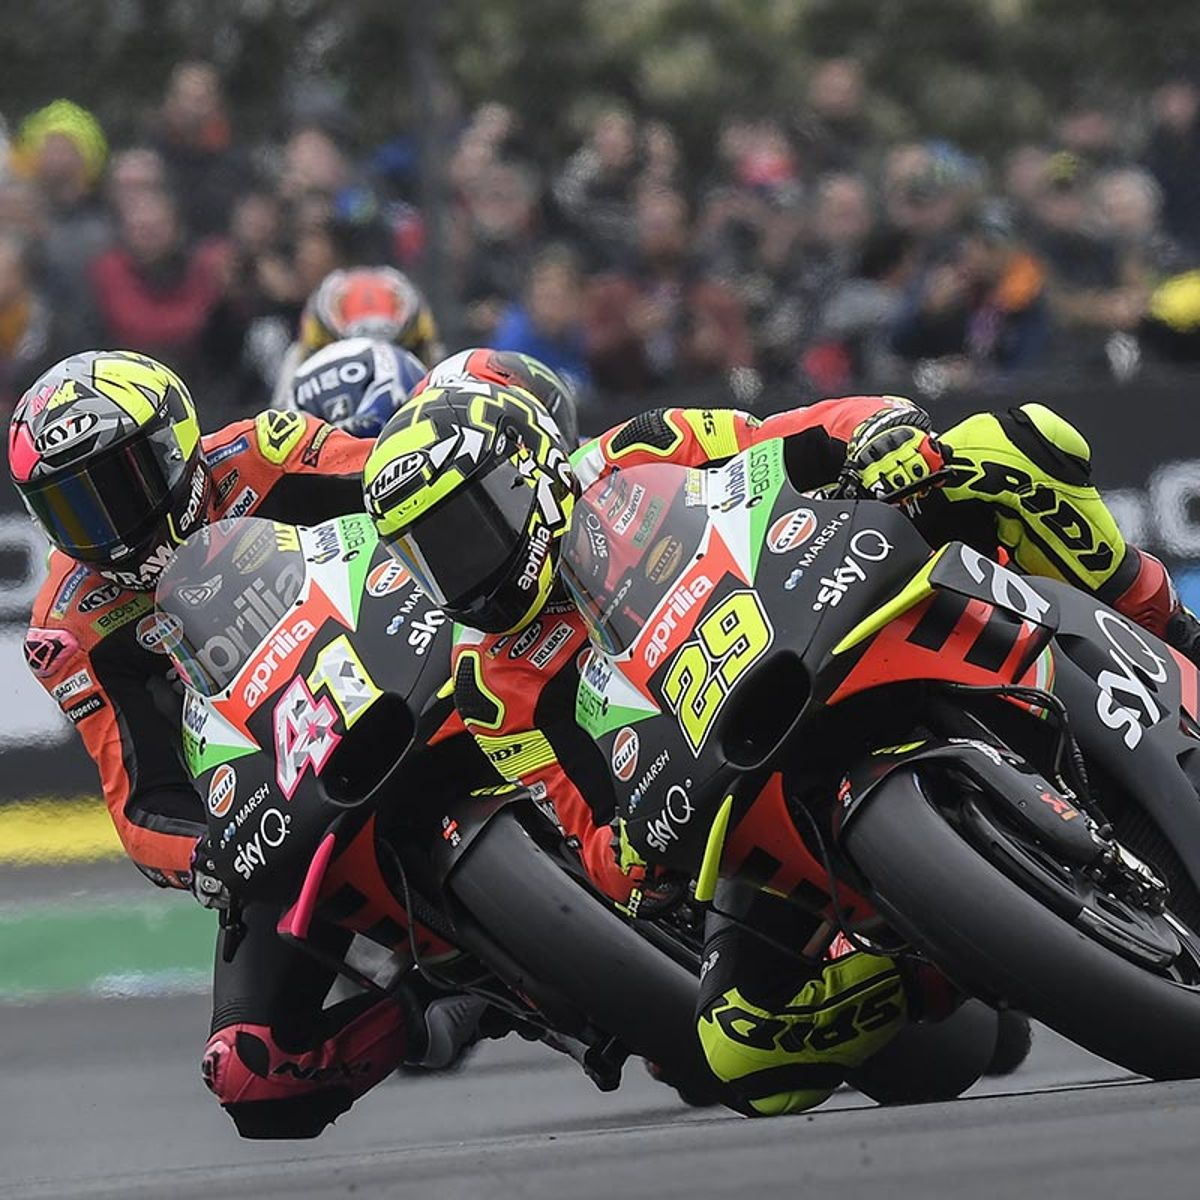 ALEIX AND APRILIA IN THE POINTS AGAIN AT THE LE MANS GP_thumb